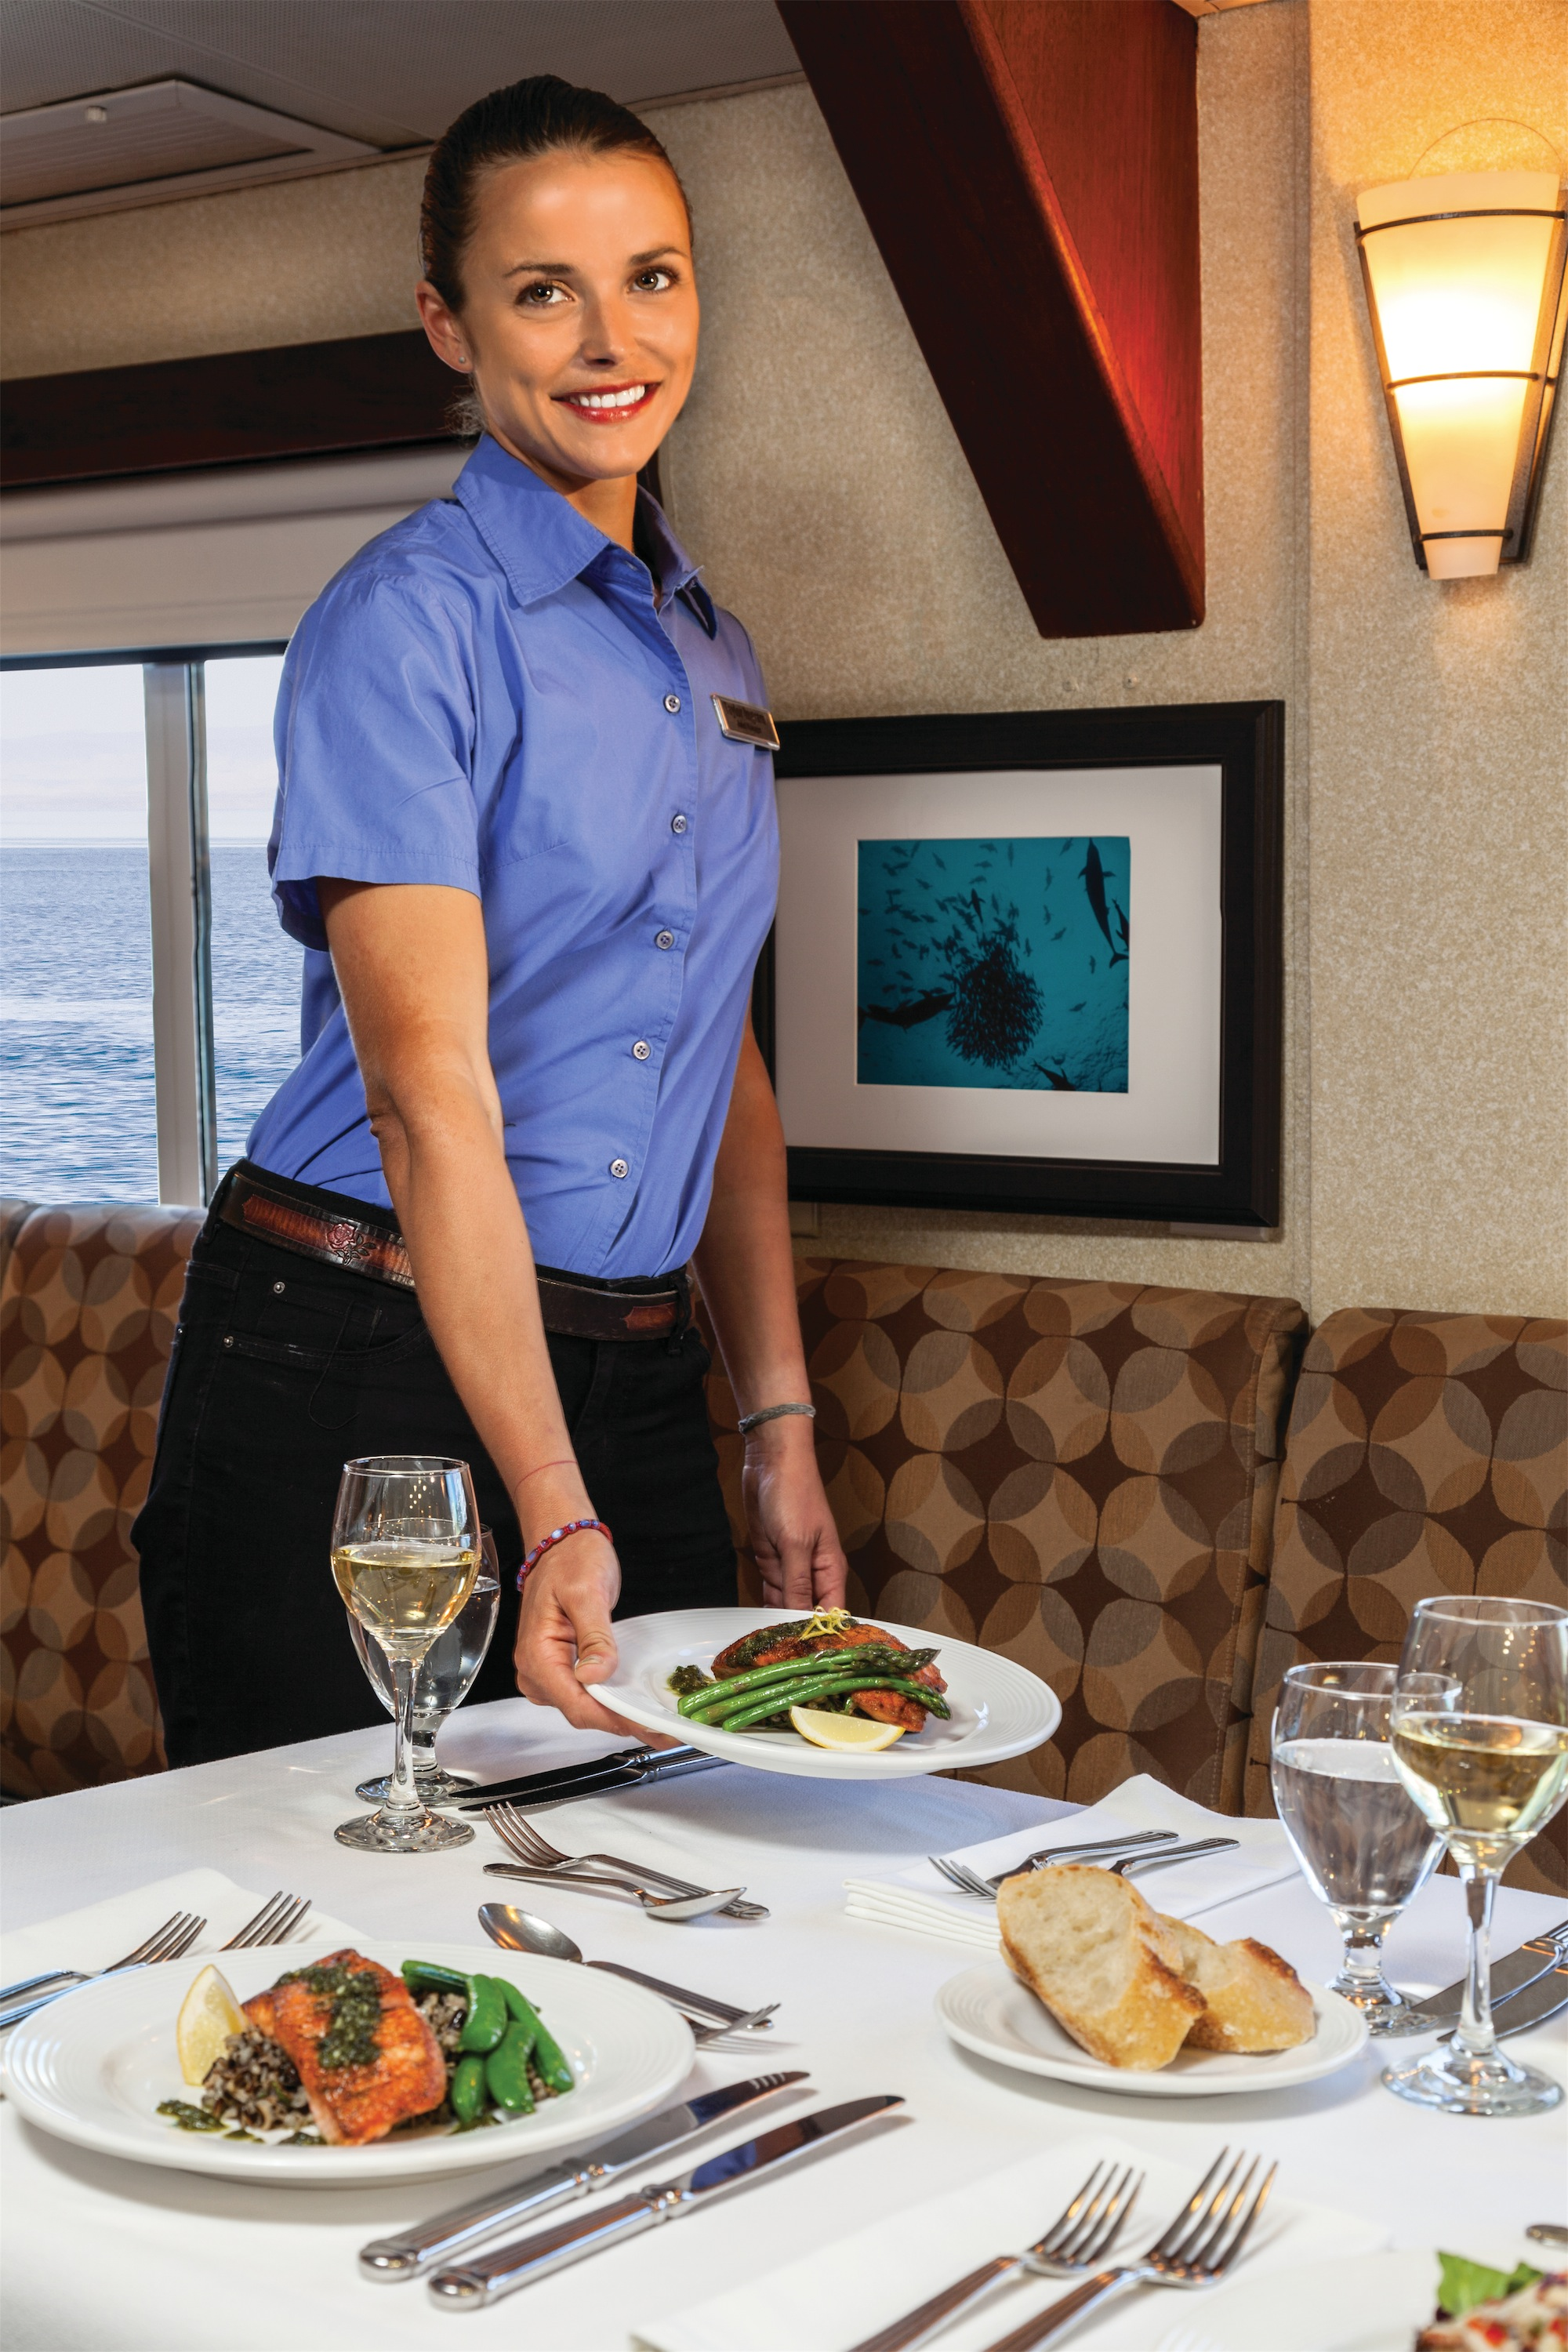 Lindblad Expeditions National Geographic Sea Bird & National Geographic Sea Lion Interior Hotel Manager in Dining Room.jpg